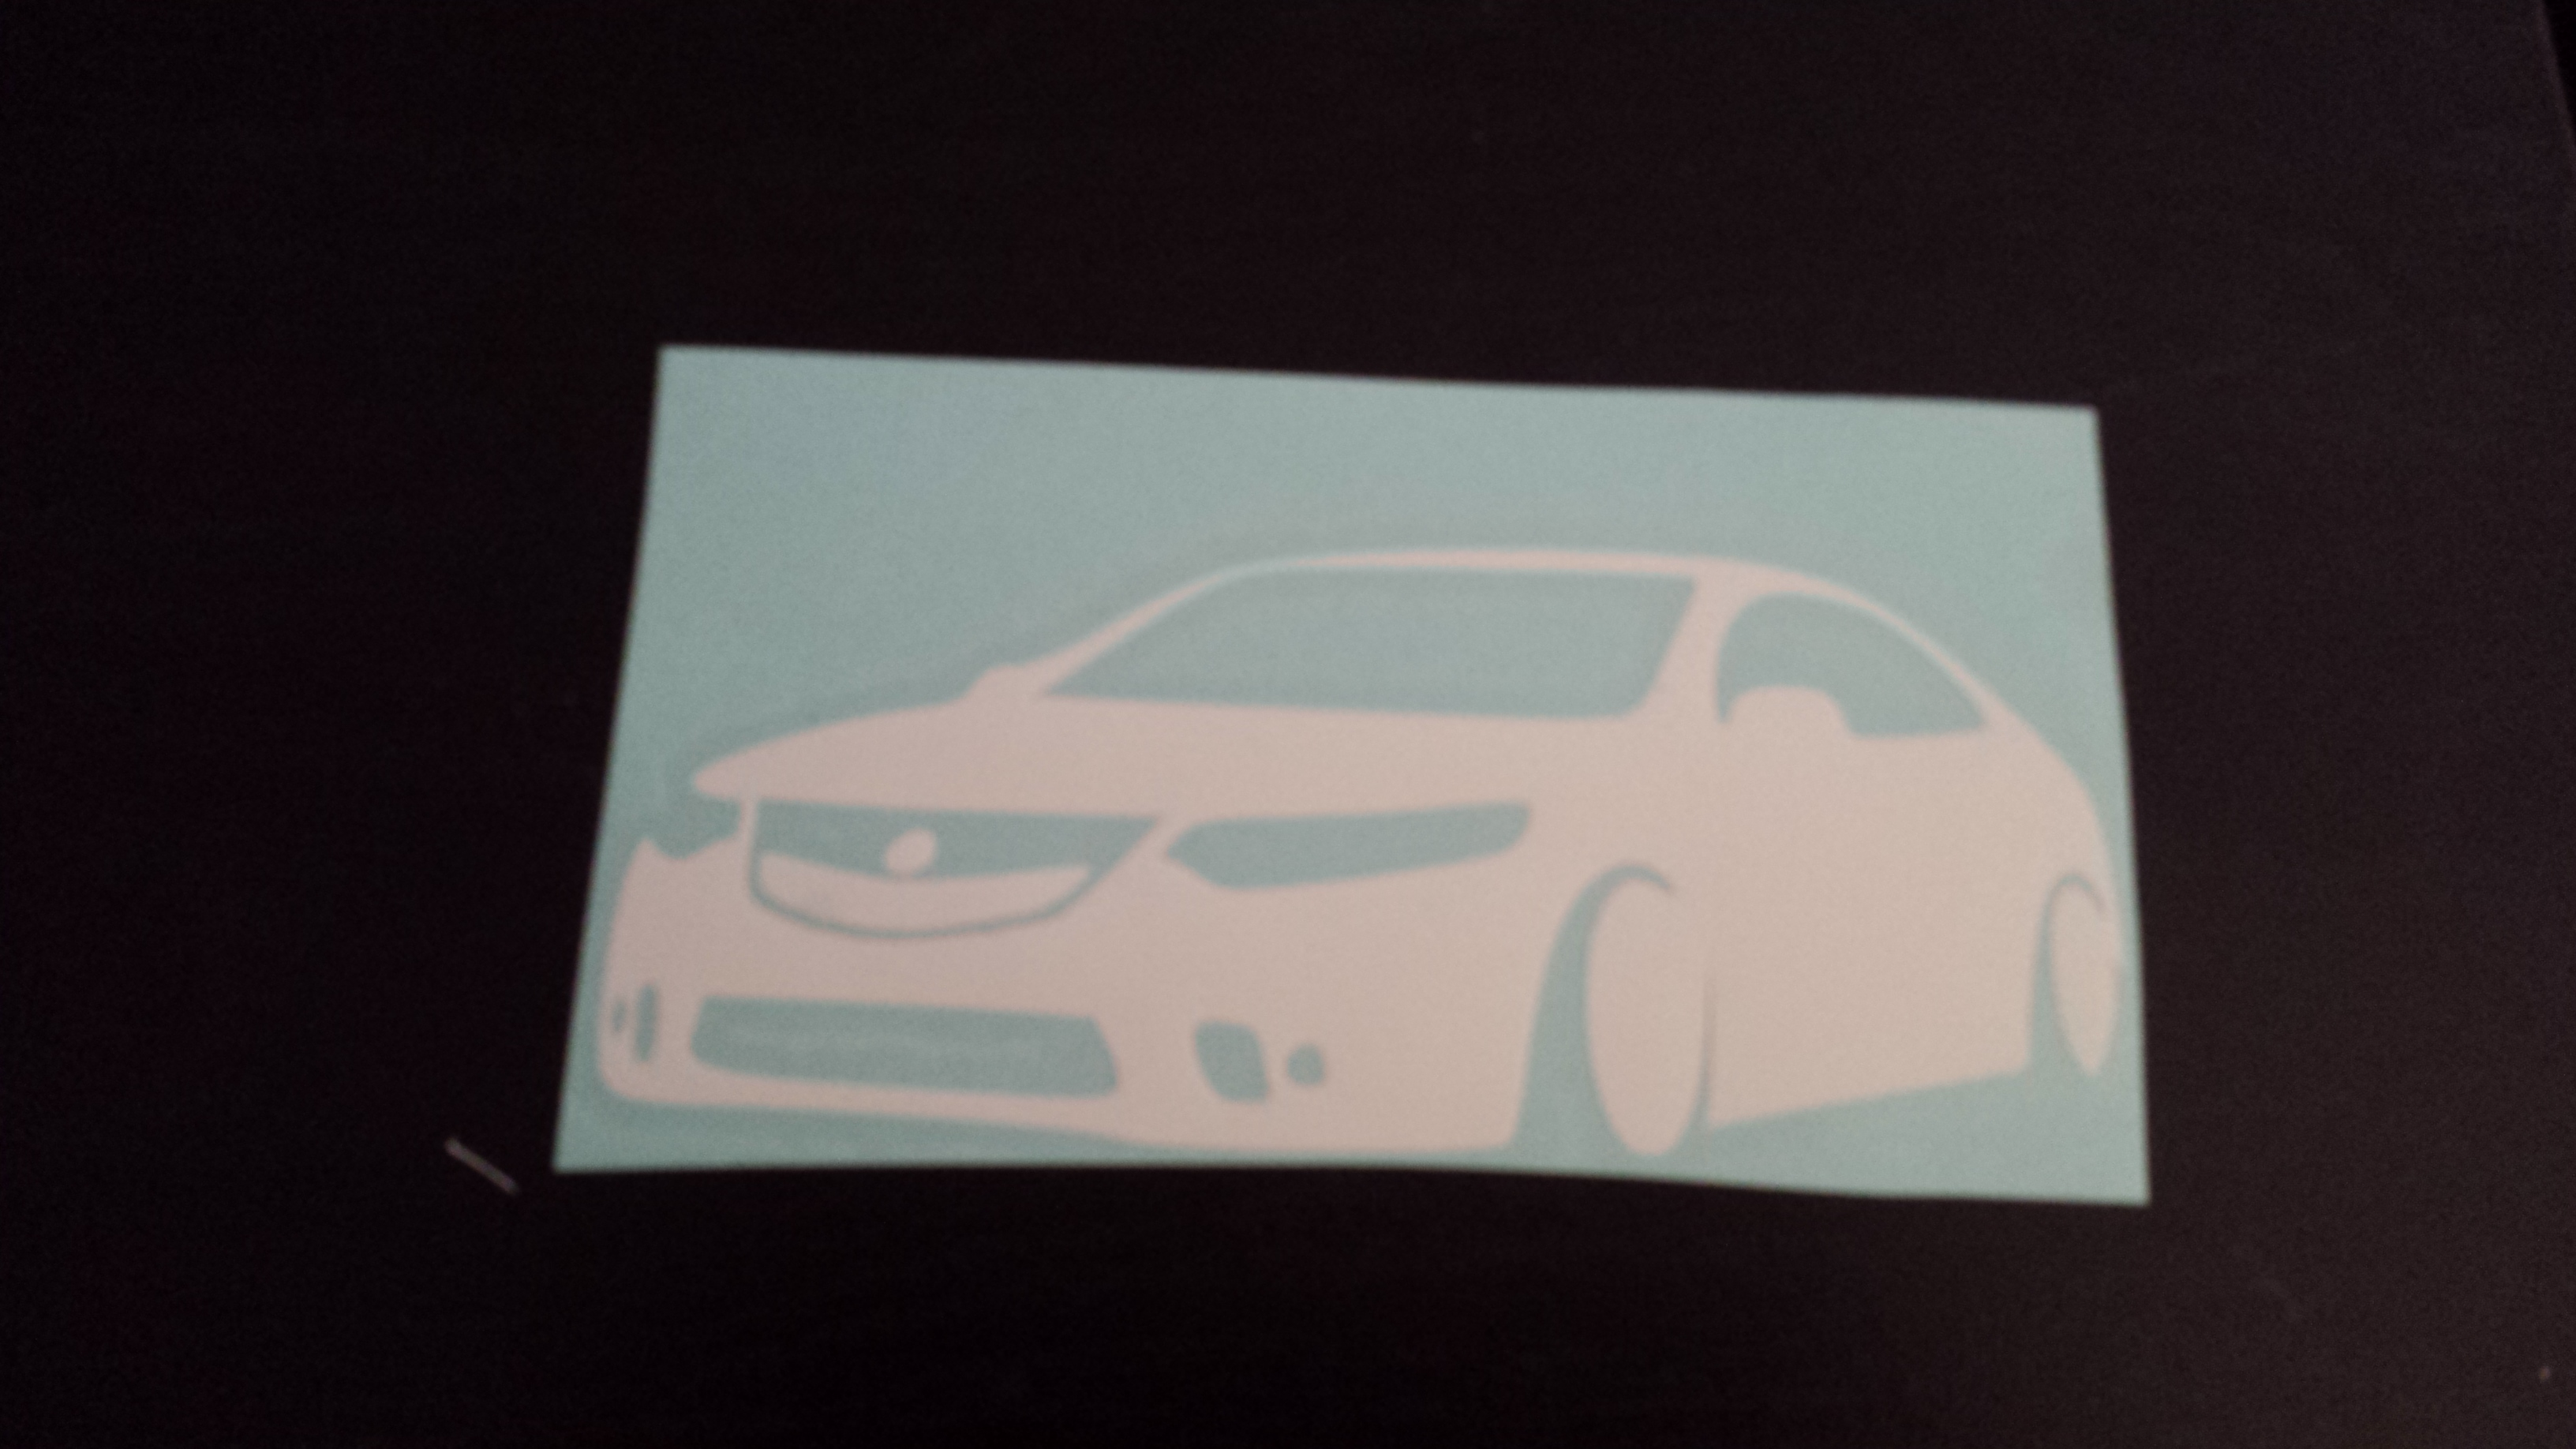 Acura TL Sticker On Storenvy - Acura tl decals